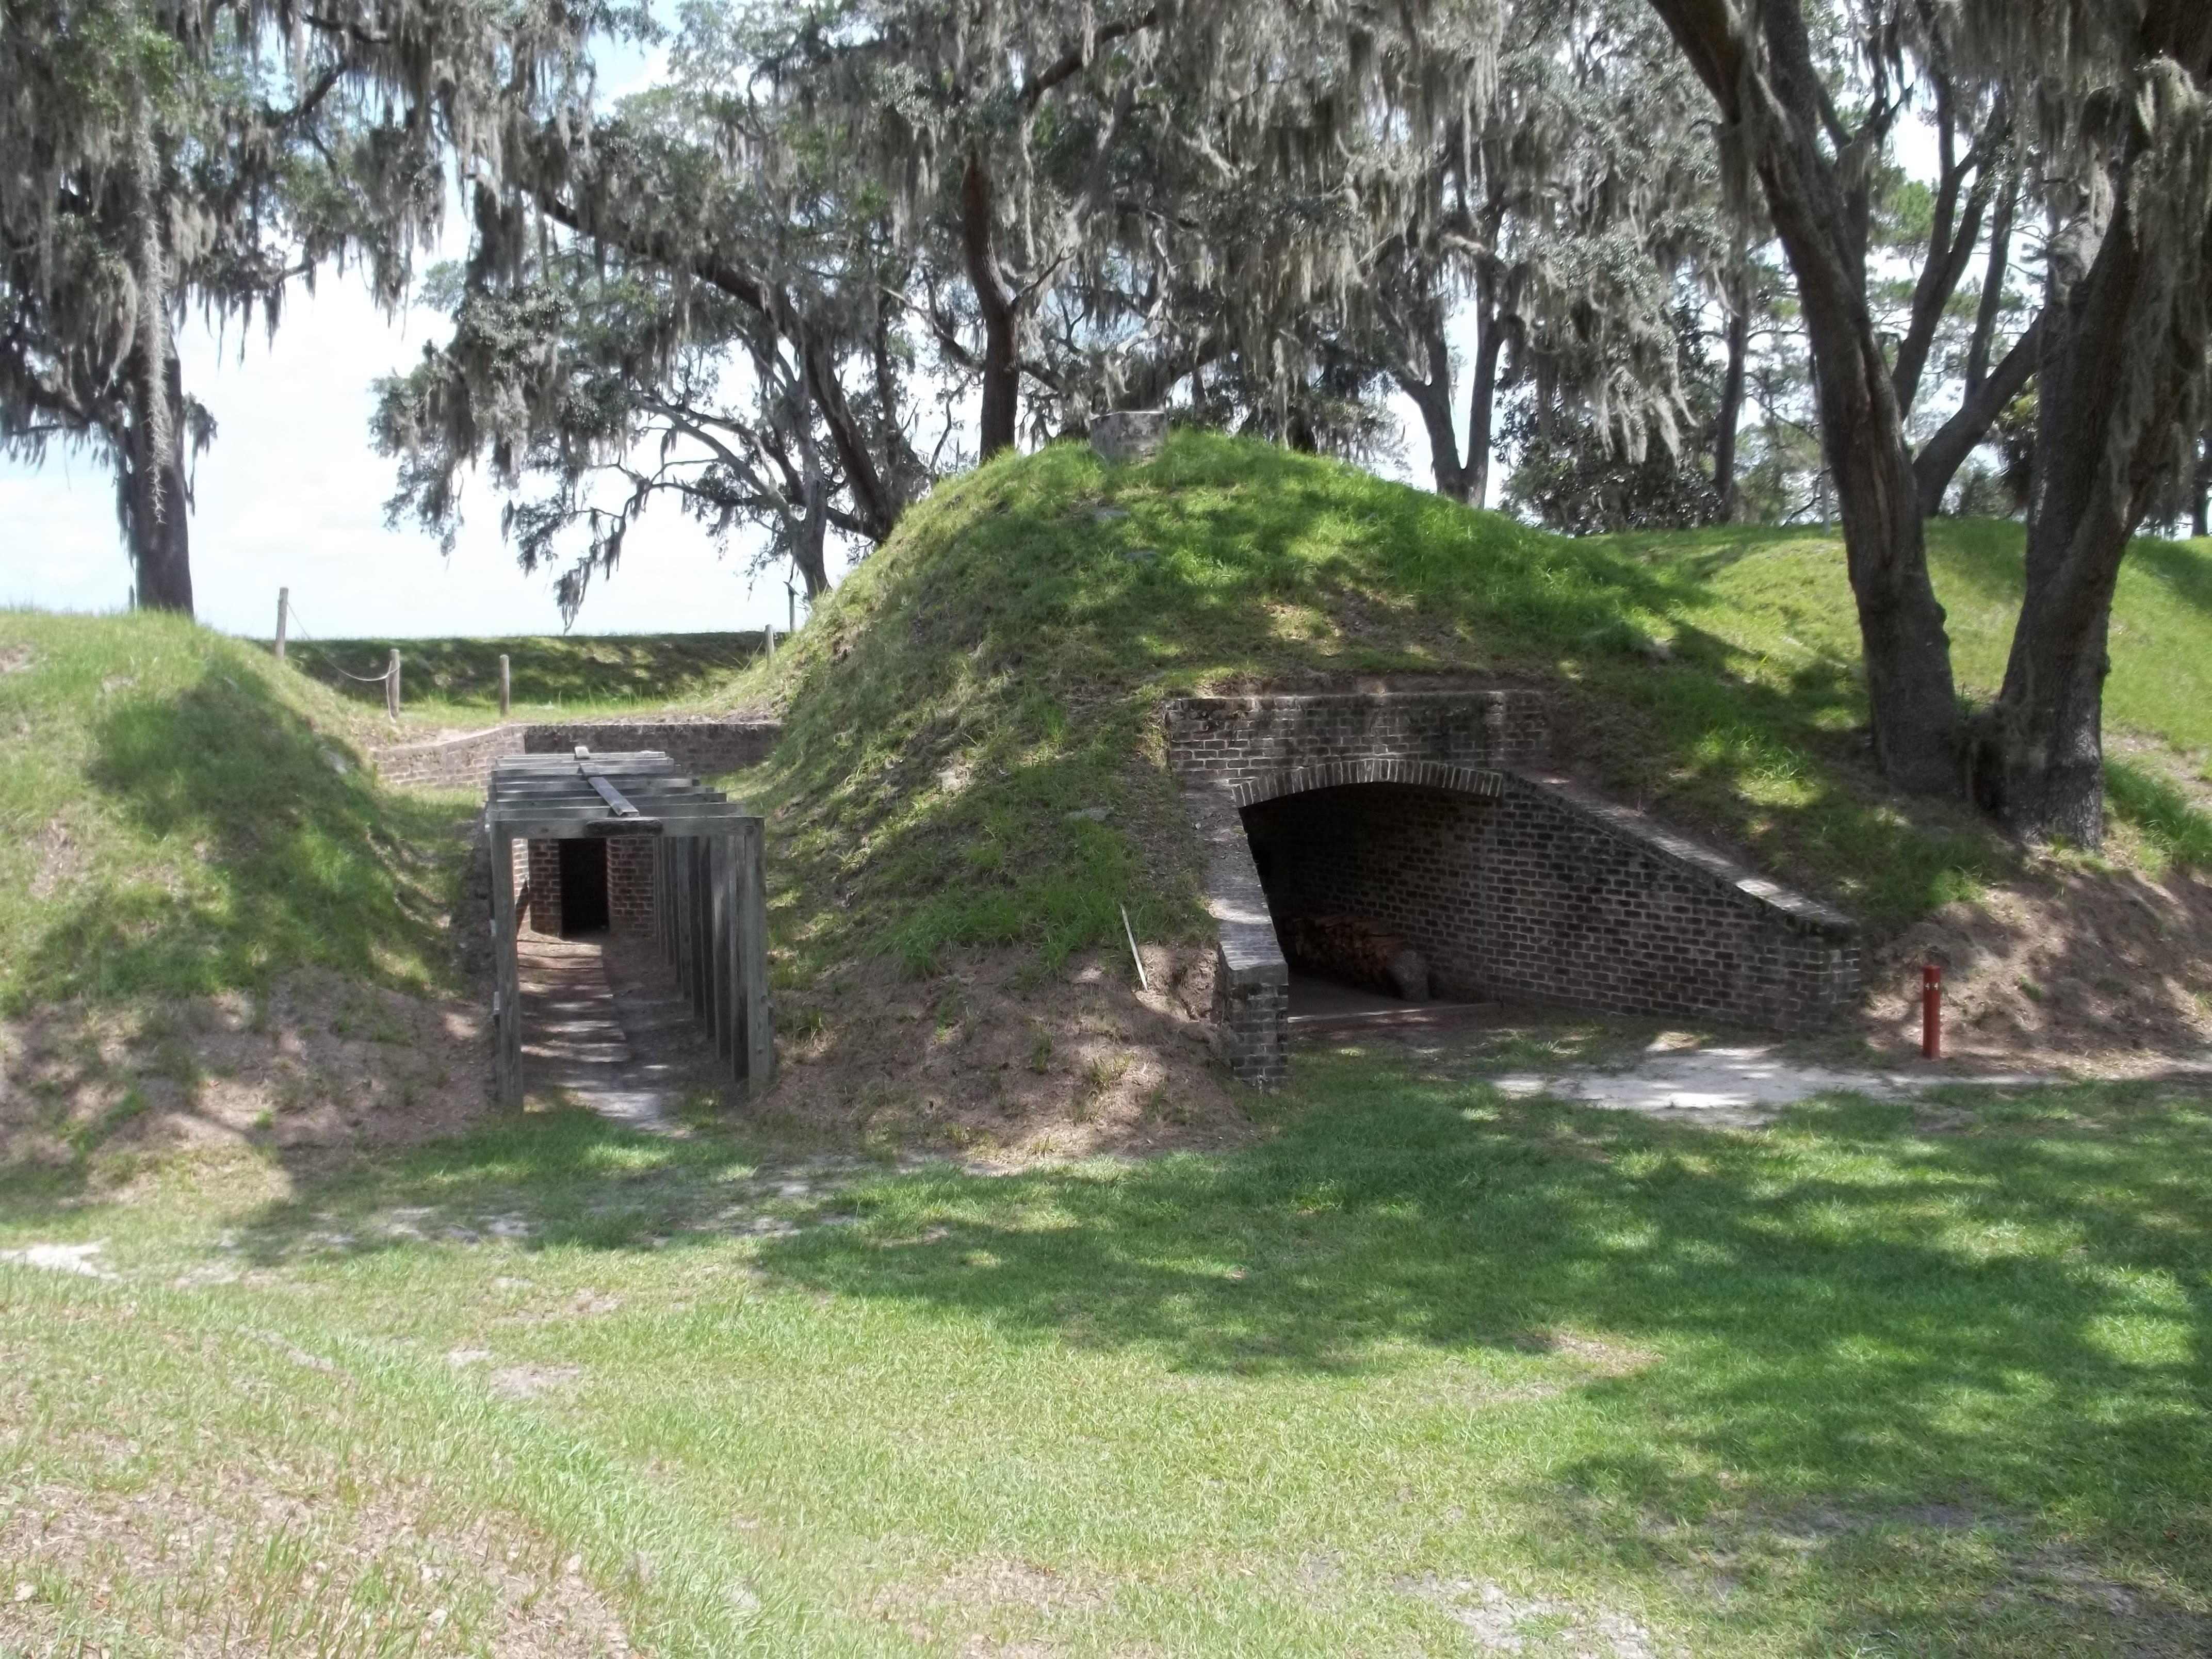 Some of the earthworks at Fort McAllister